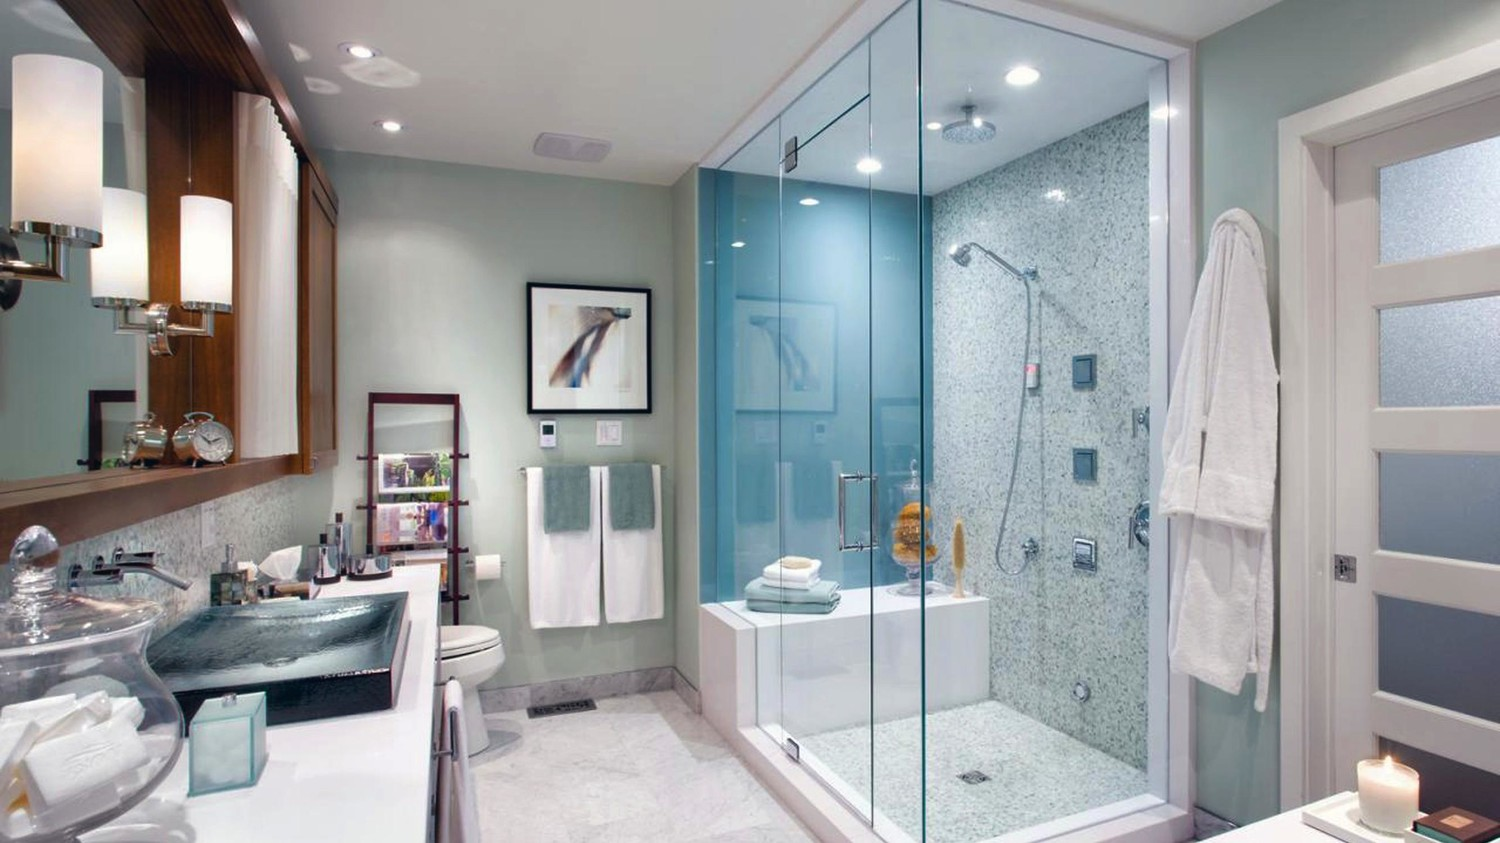 bathroom designs pictures. Bathroom Updates For Every Style Designs Pictures